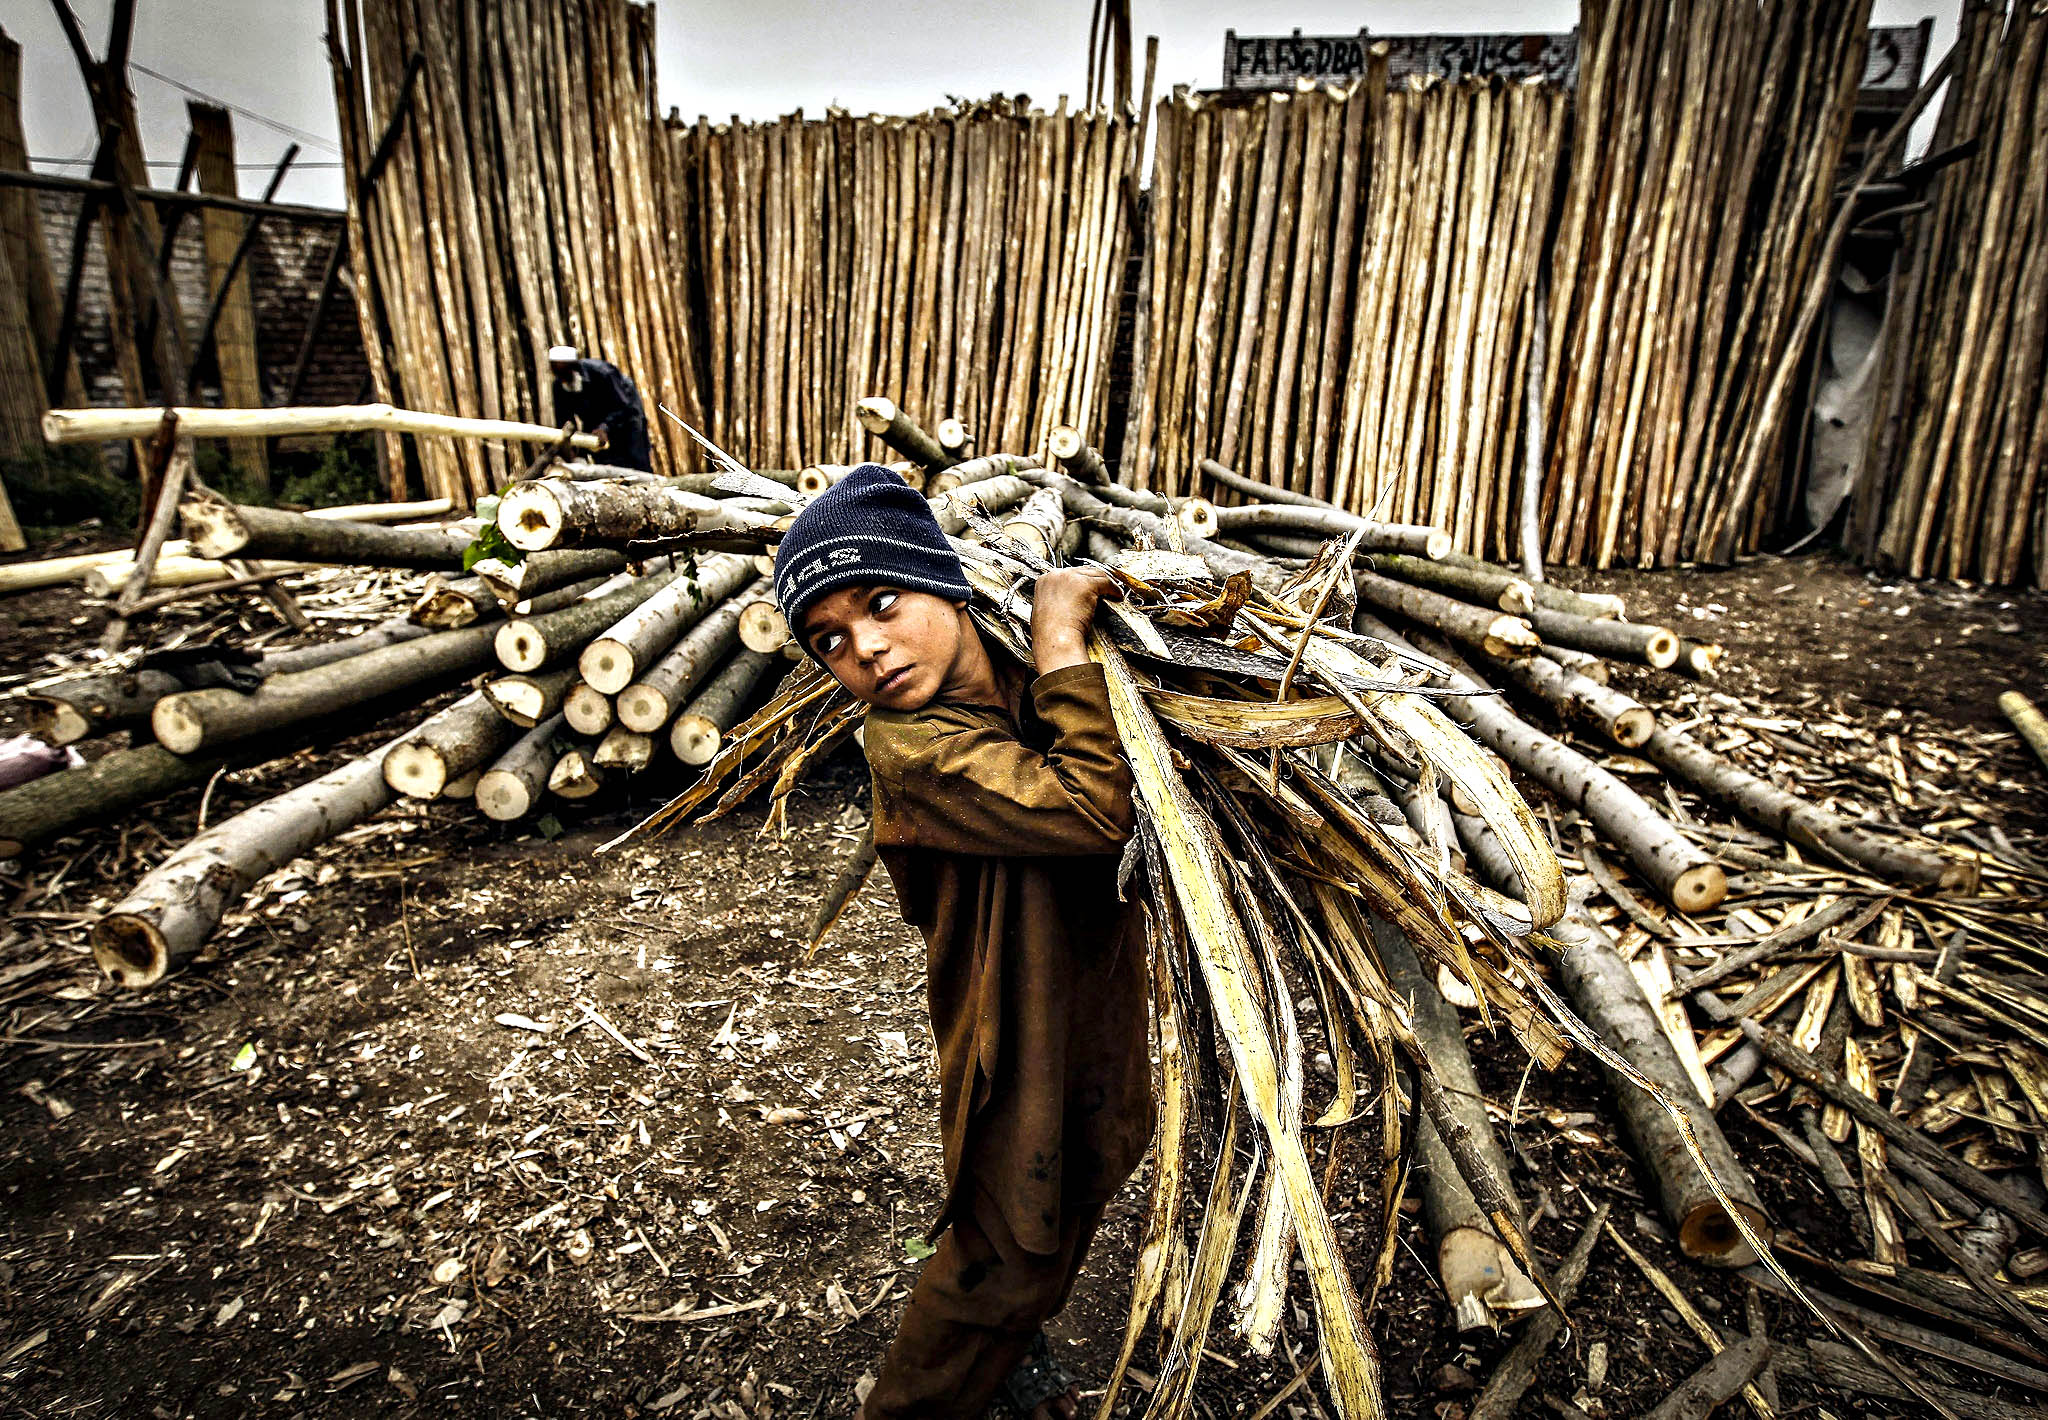 A young laborer works at a woods shop in Peshawar, Pakistan, 10 November 2014. Fire wood is a big source of domestic fuel in rural Pakistan where during winters, domestic consumers face acute shortage of Natural Gas.